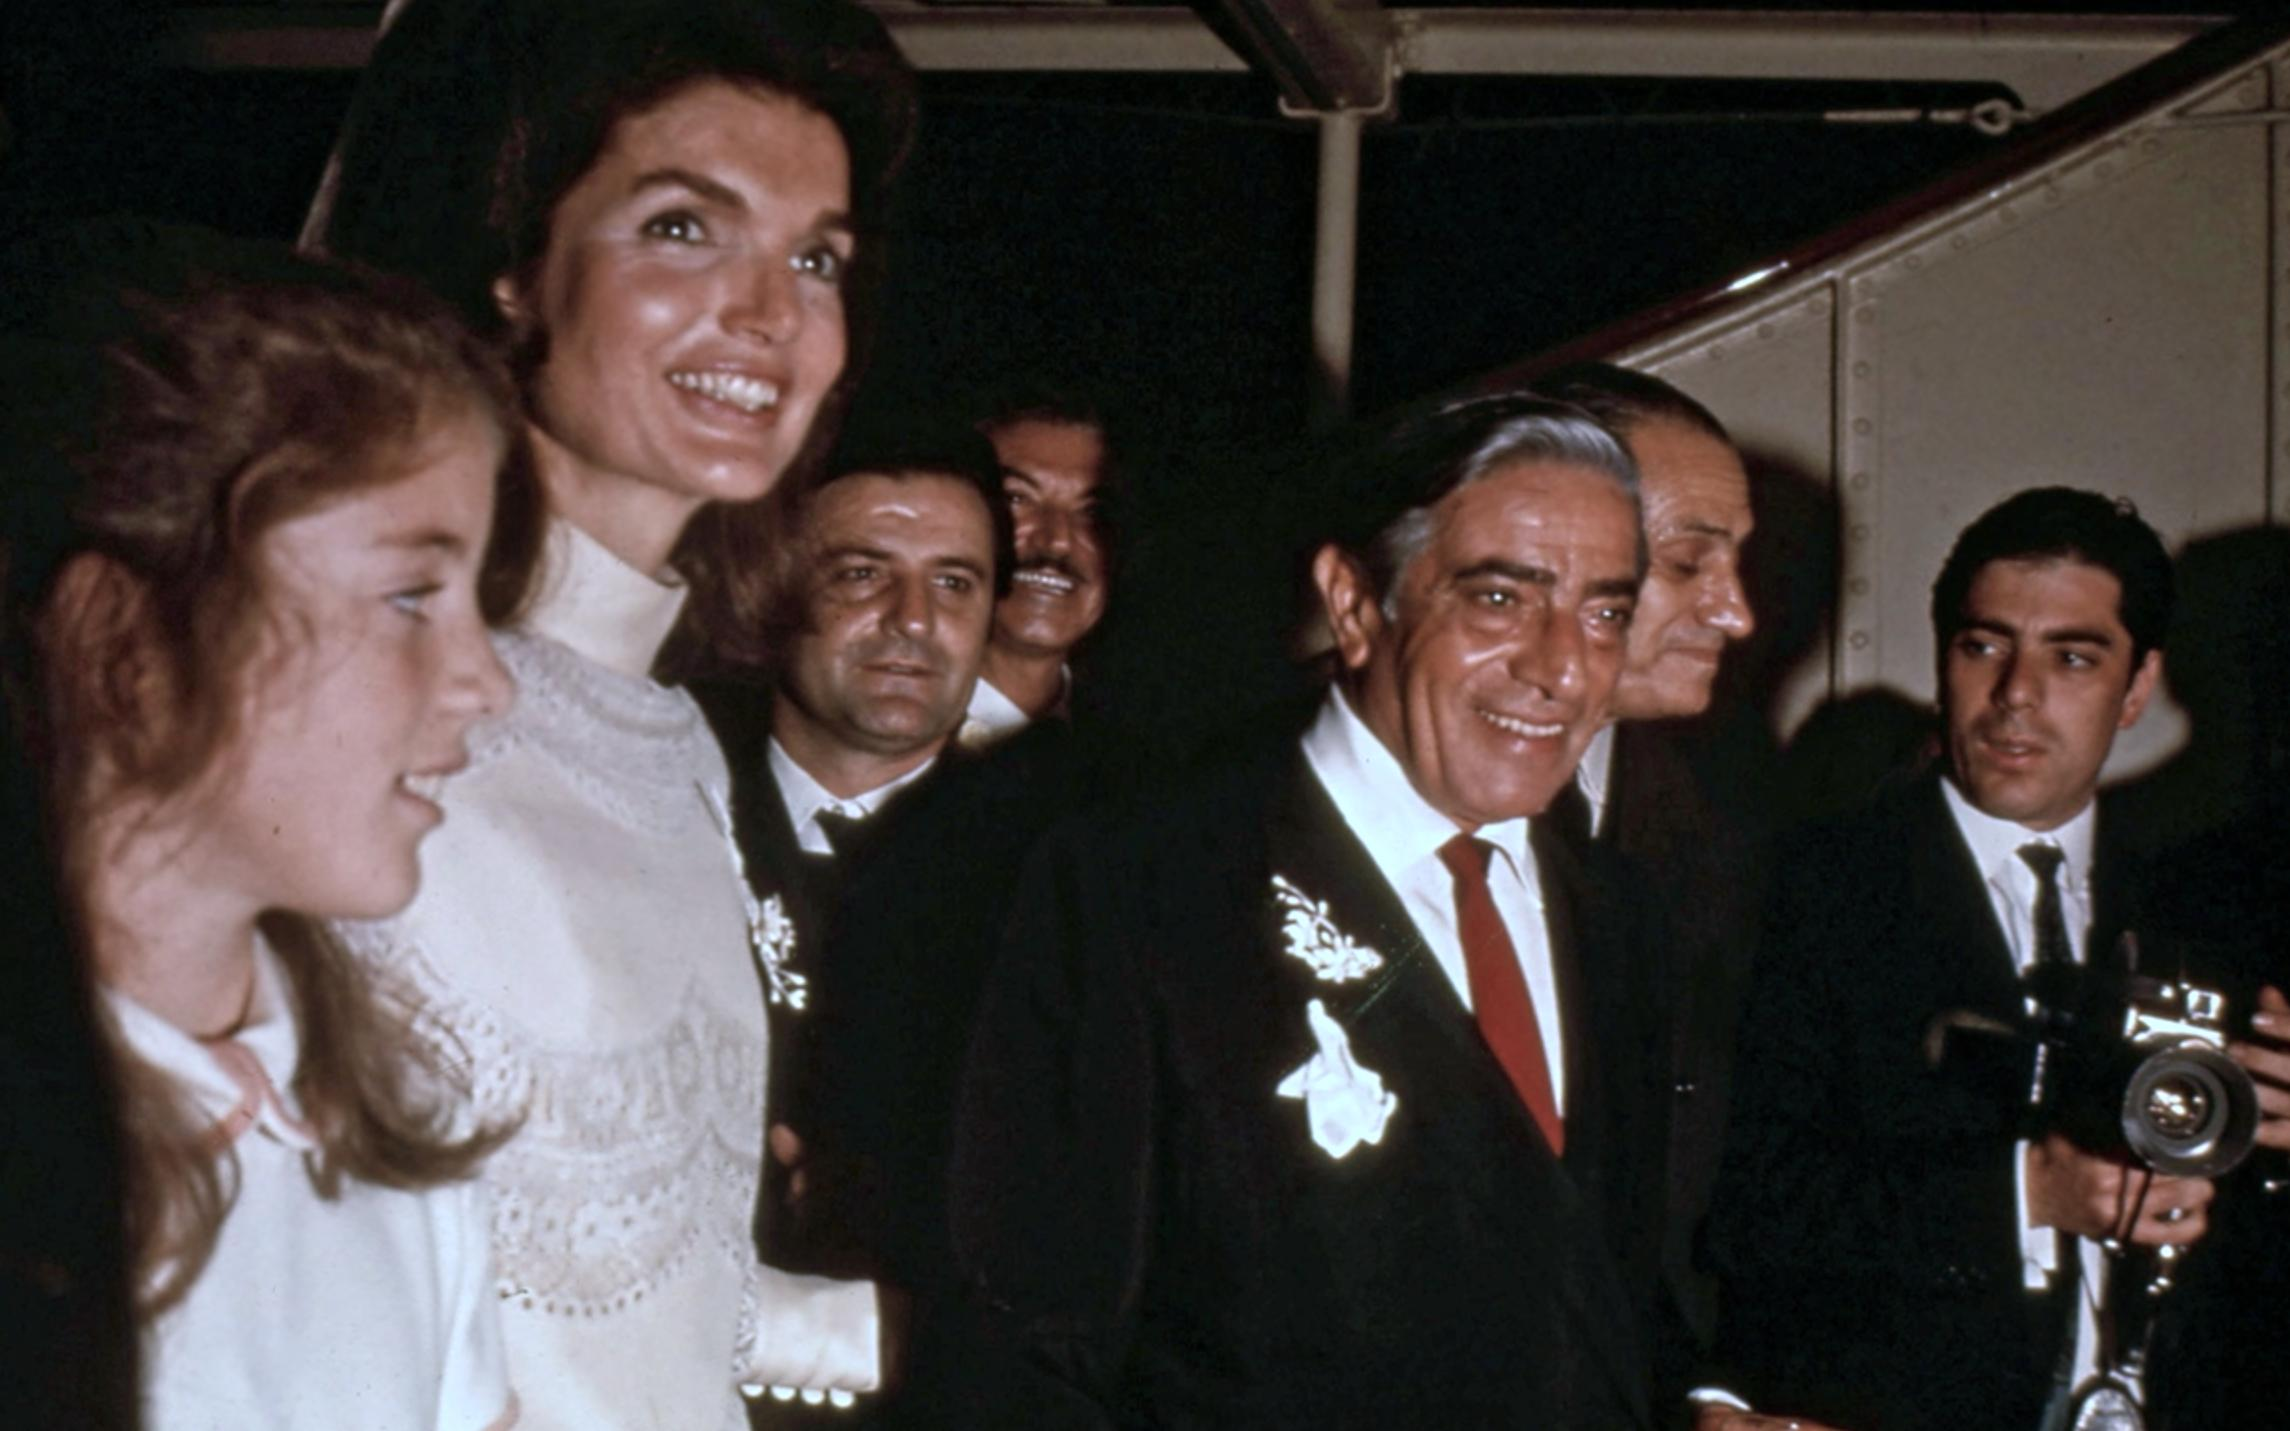 Caroline Kennedy, Jacqueline Kennedy, and Aristotle Onassis in A Tale of Two Sisters (2015)